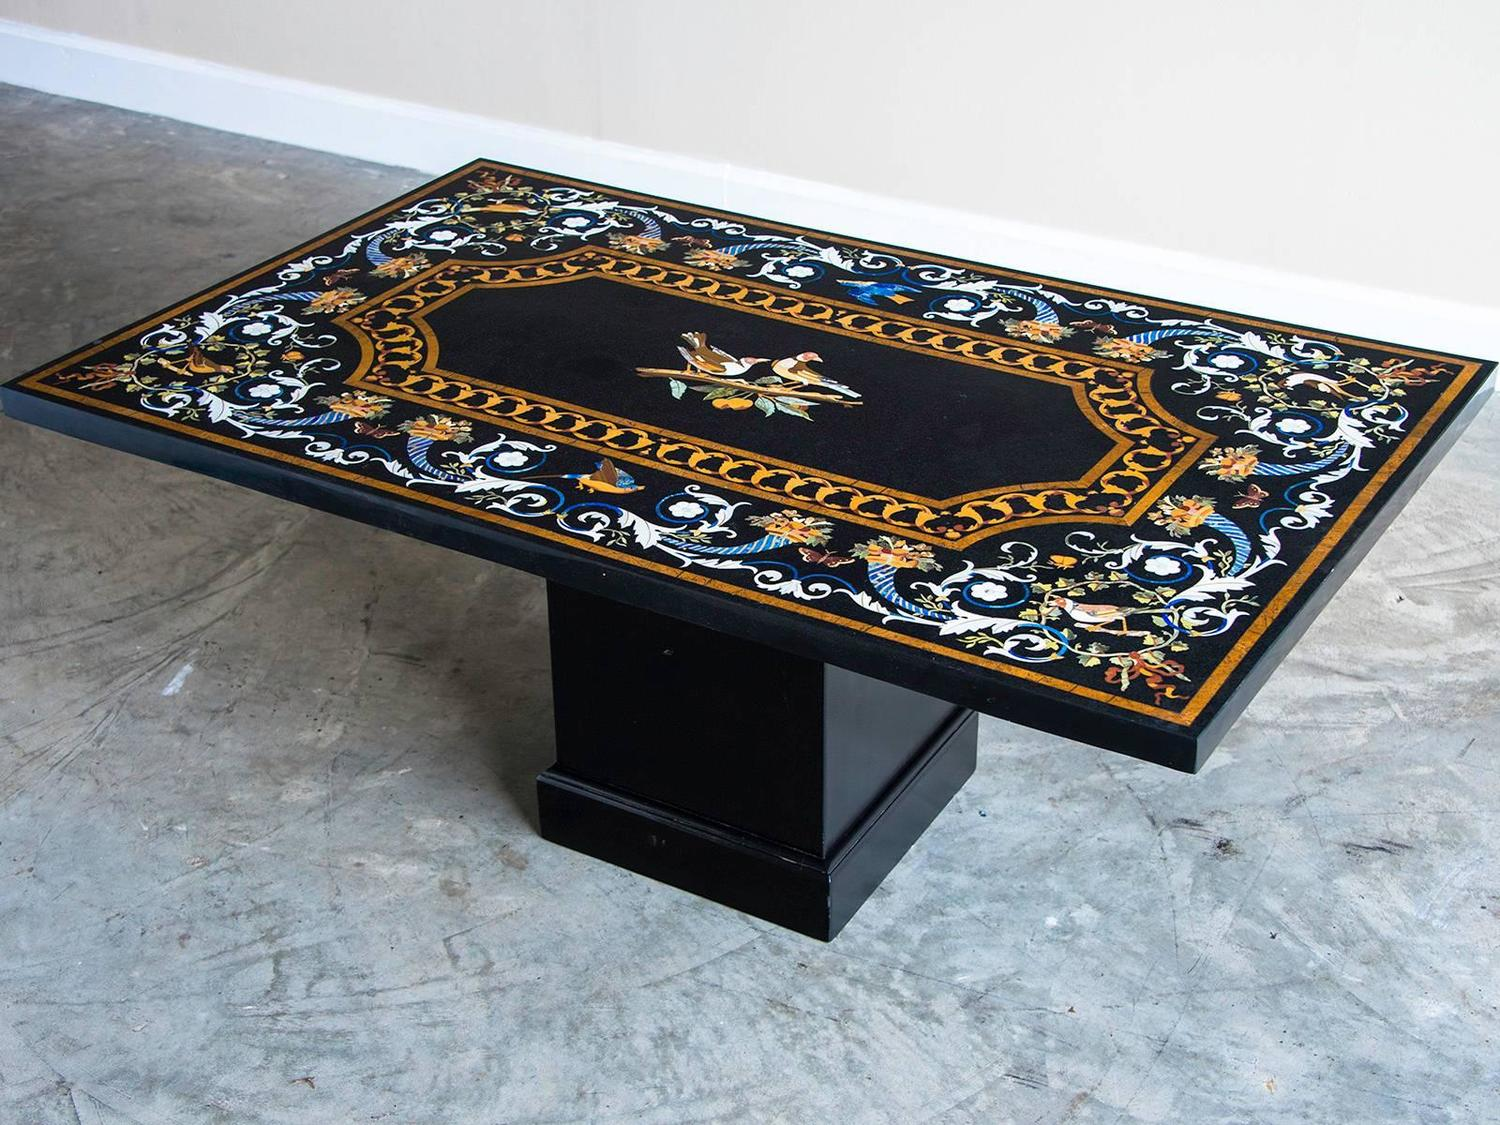 Florentine Style Pietra Dura Vintage Indian Plaque Coffee Table Circa 2000 For Sale At 1stdibs